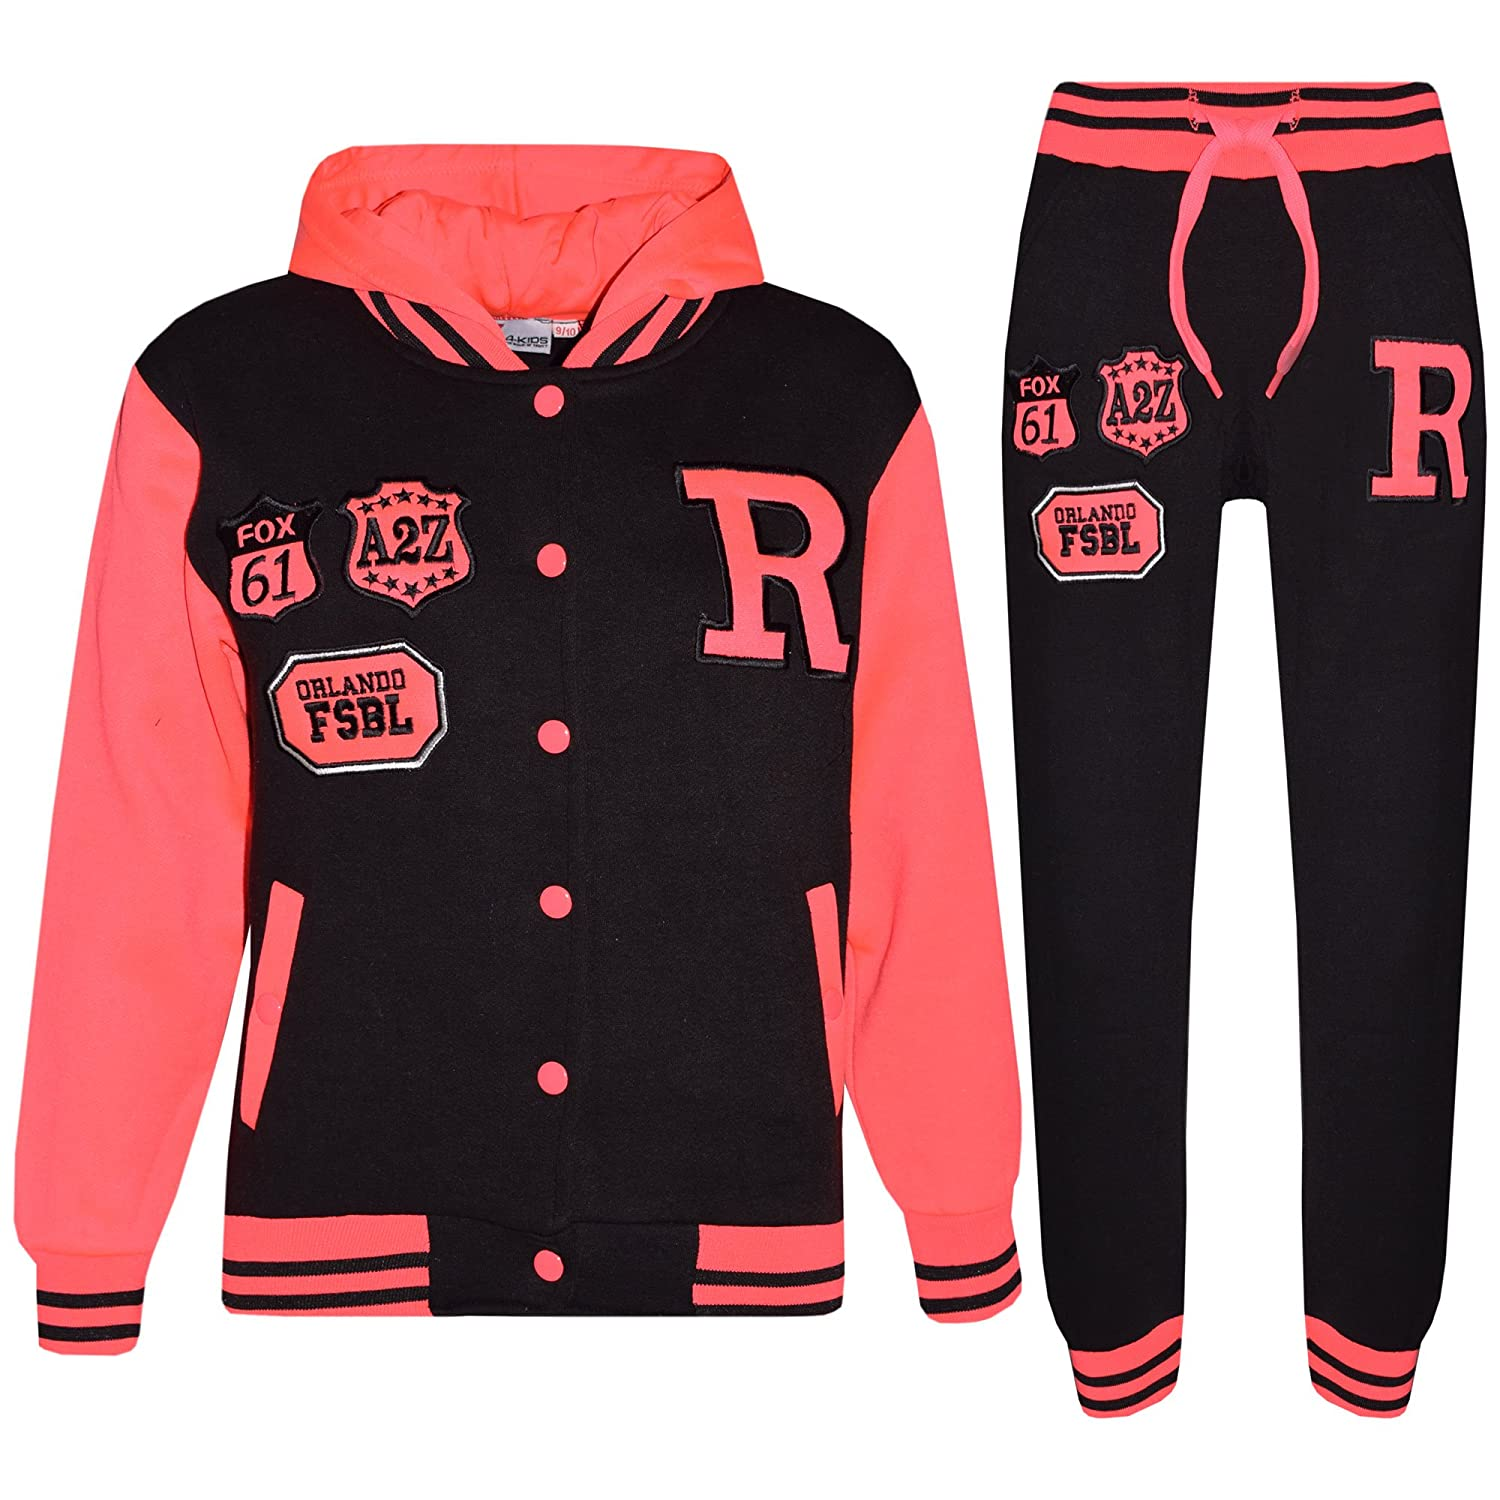 Kids Girls Boys Baseball Tracksuit - Fox Black & Neon Pink - 9-10 Years